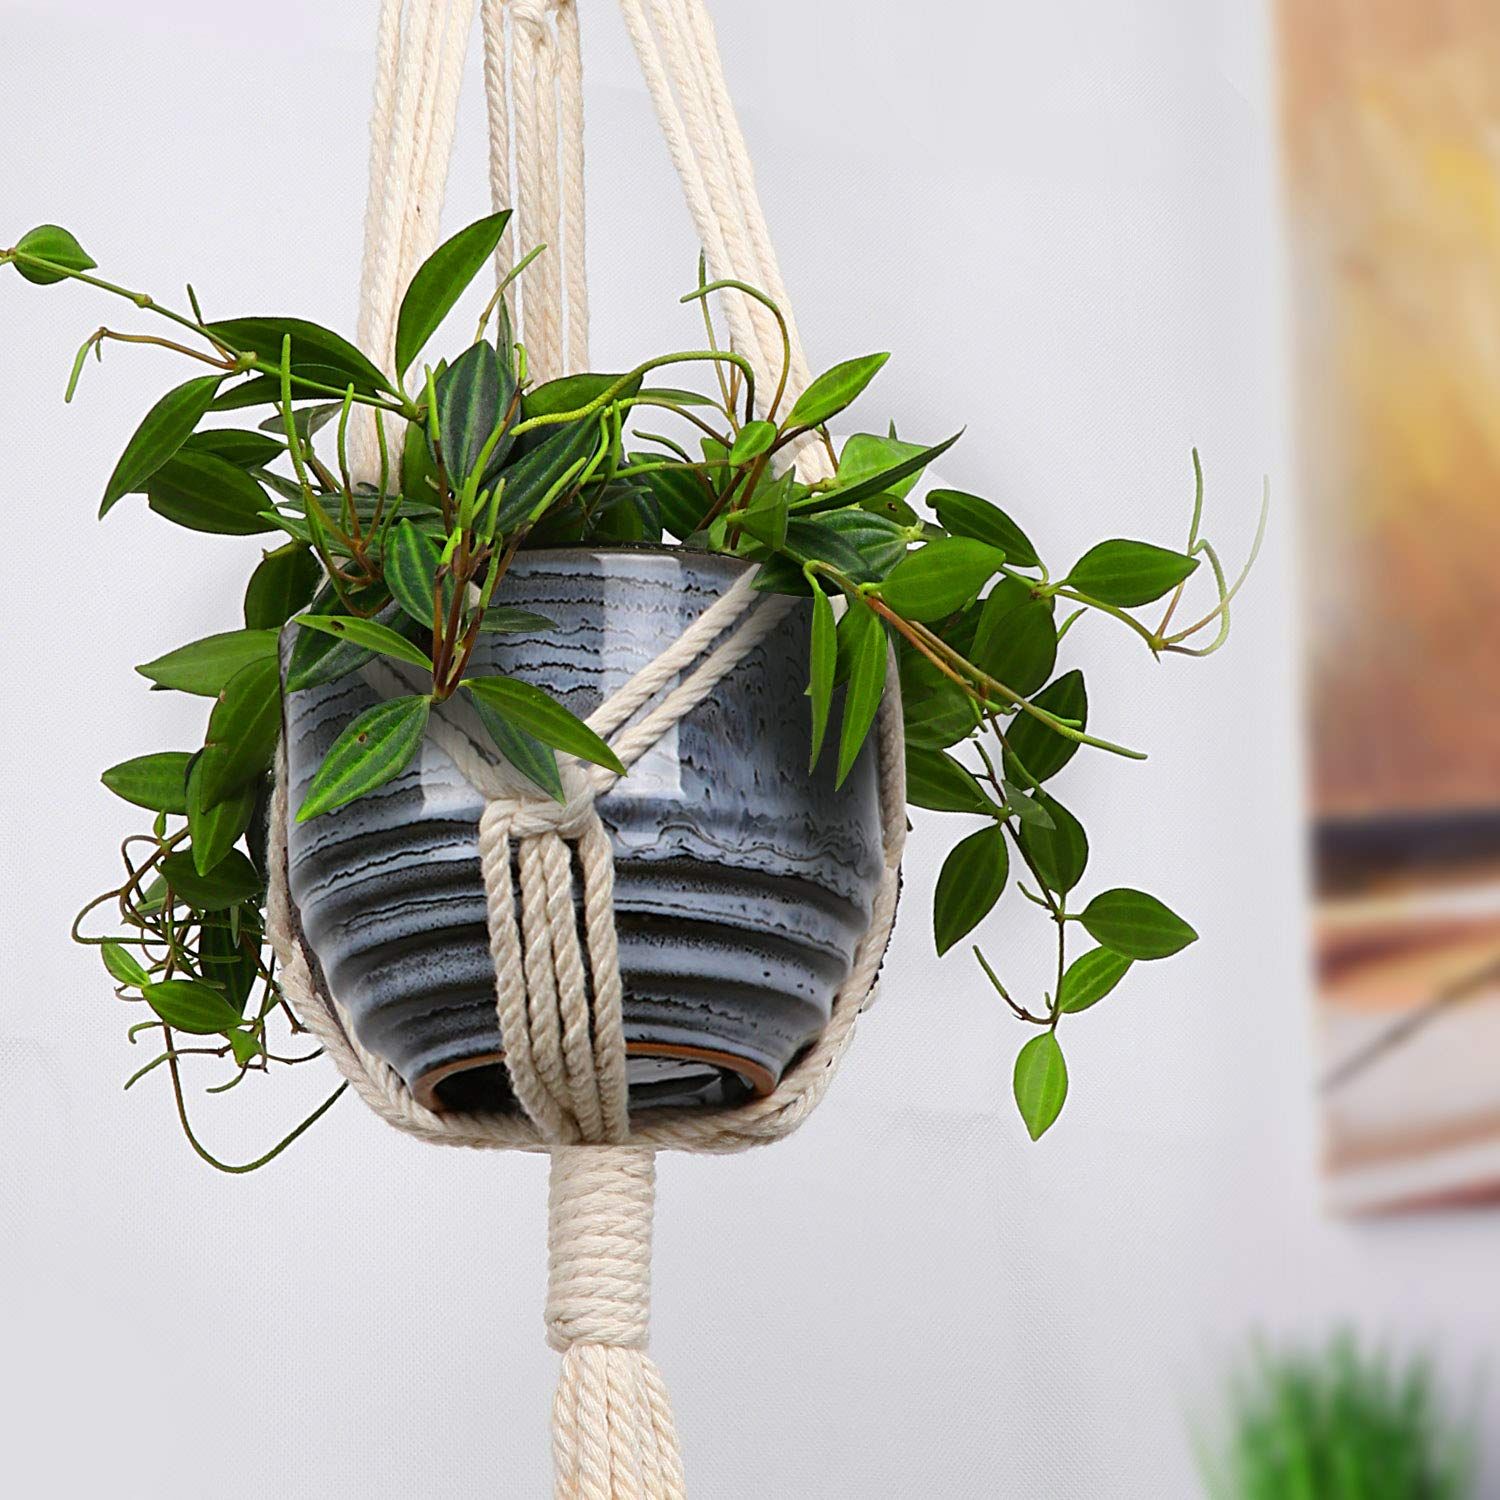 Macrame Plant Hangers - Hanging Plants Holder - Hanging Planters for House Indoor Outdoor Plants - Pots Hanger for Room Wall Planter - Handmade 100% Natural Cotton Rope 3 Legs 40 Inch, Boho Decor Chic